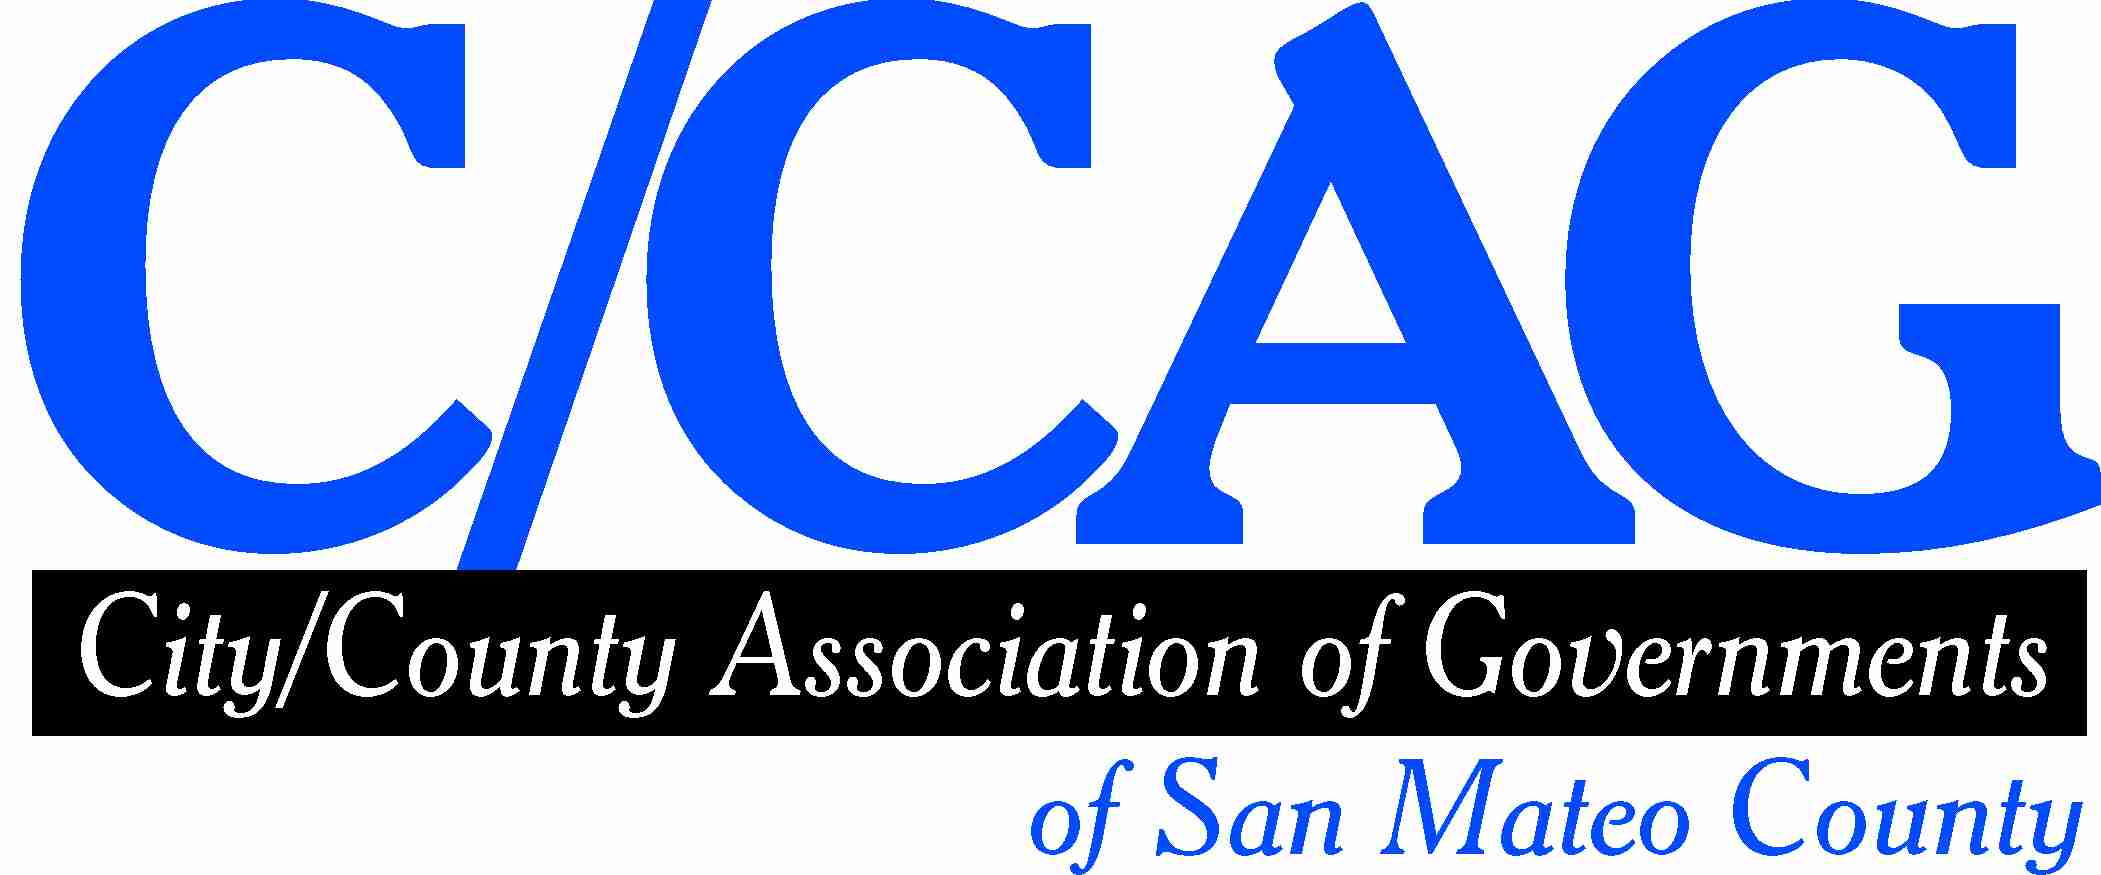 City/County Association of Governments of San Mateo County (C/CAG)